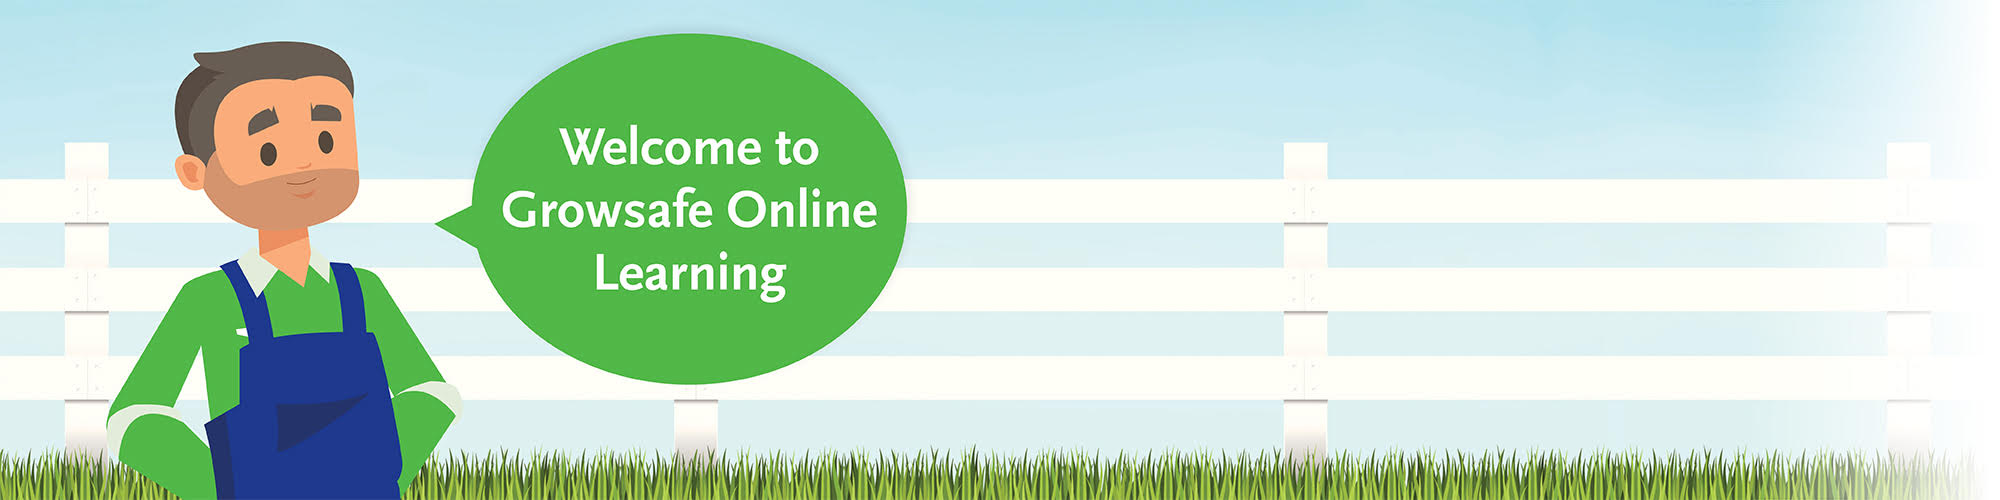 Welcome to Growsafe Online Learning